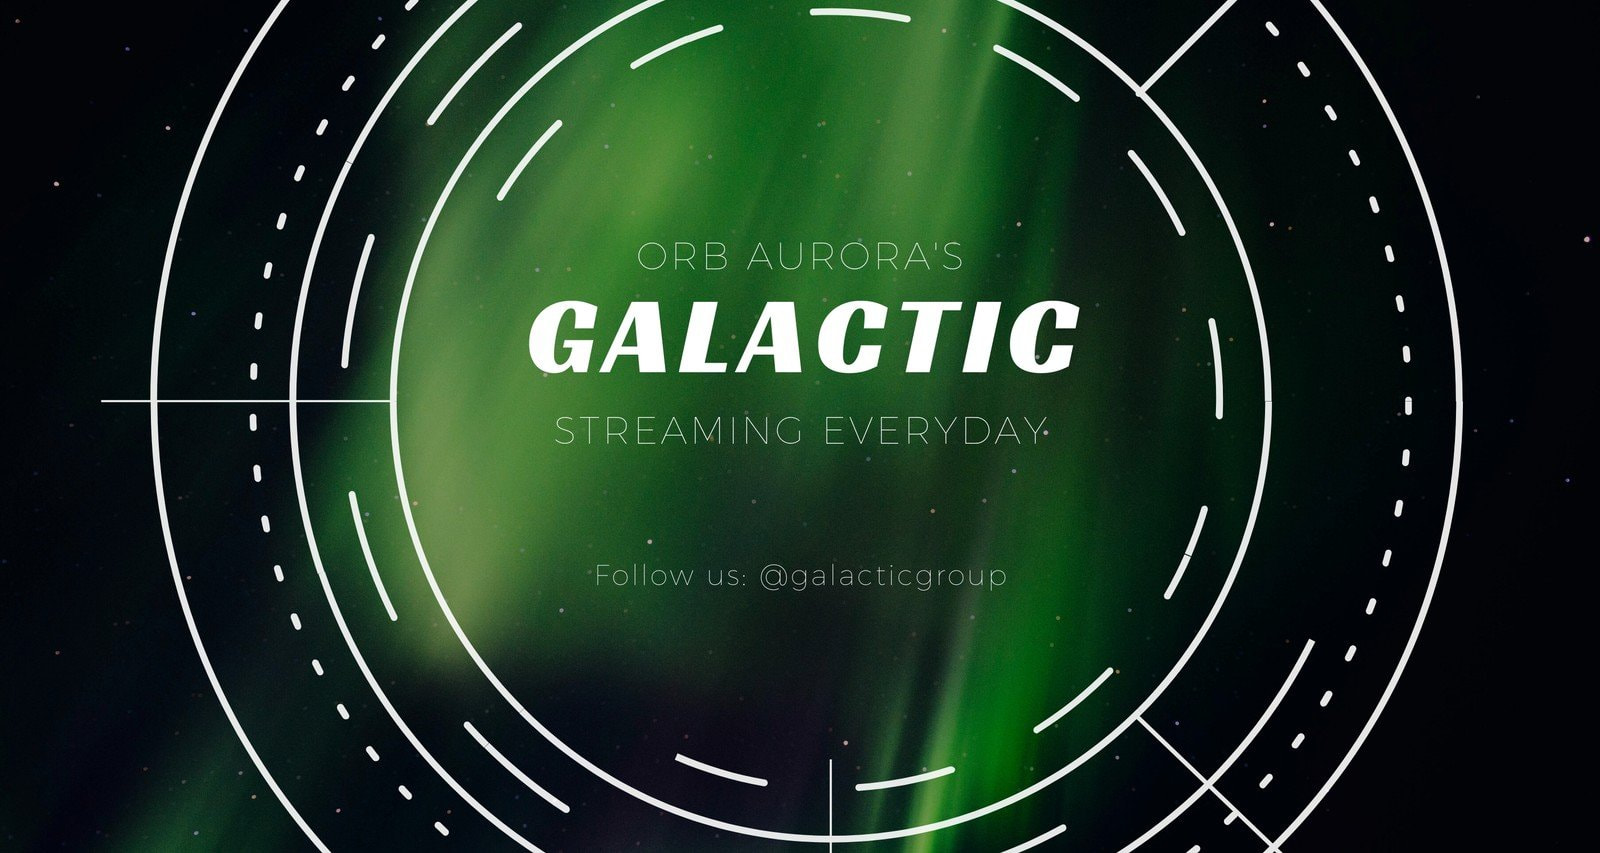 Green Aurora Photo Background with White Galactic Orb Line Vector General Twitch Banner